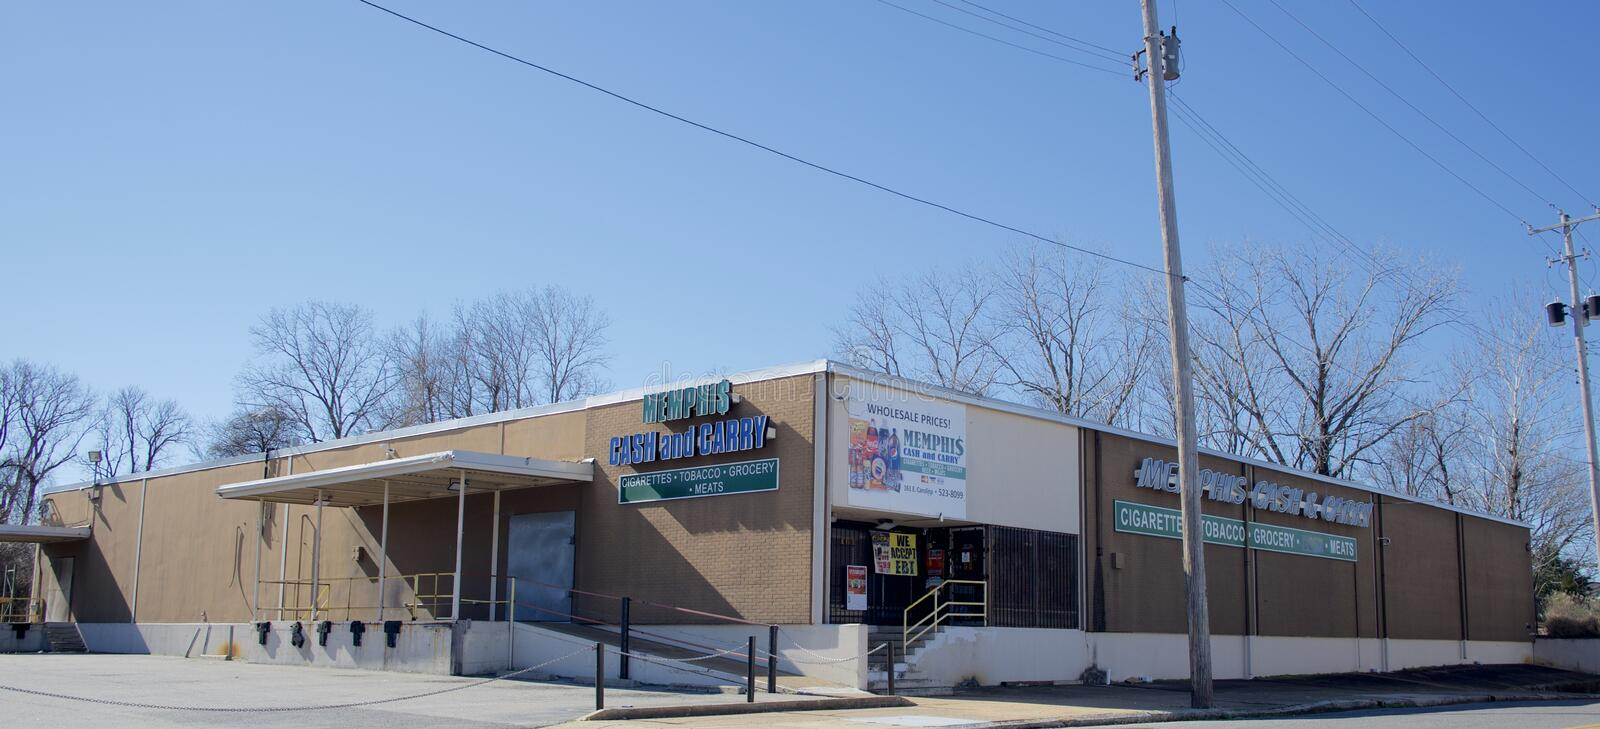 Memphis Cash and Carry Grocery Store Weitwinkel, Memphis, TN stockfotos